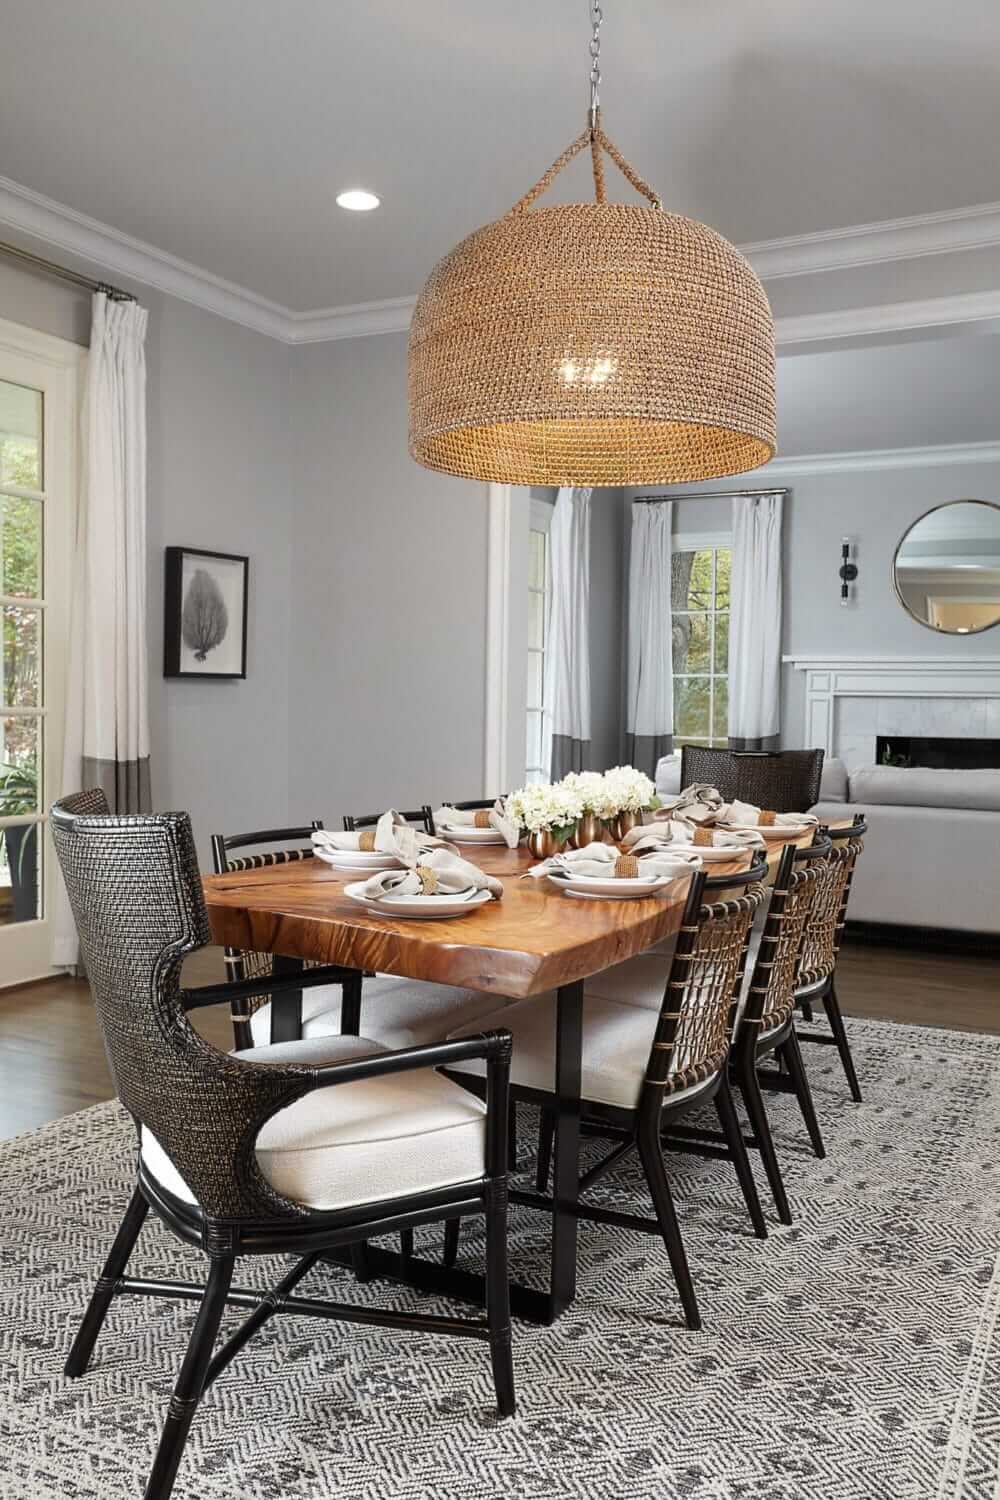 Formal dining never looked so good. Live edged table, oversized Palacek chandelier and comfortable and stylish chairs welcome guests to stay and enjoy a meal. | Midway Hollow | Interior Design firm ML Interiors Group